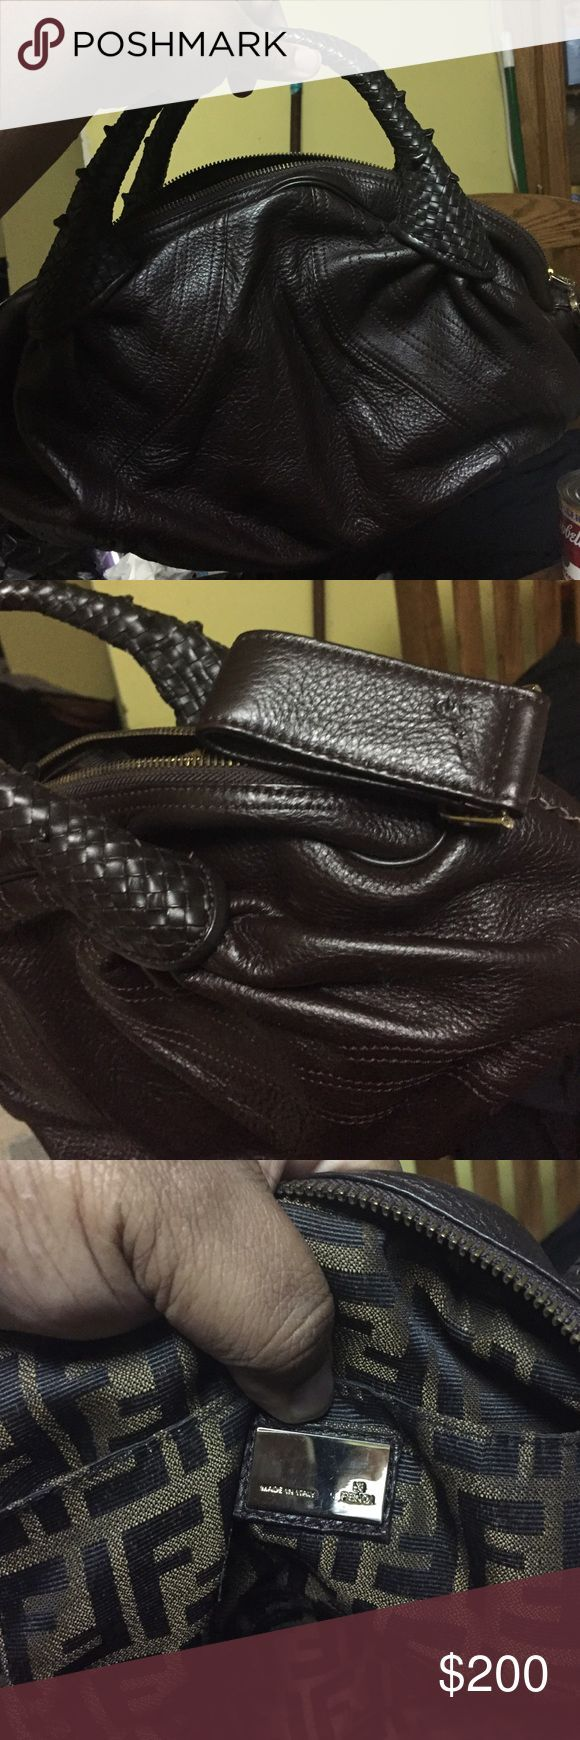 Brown Fendi leather bag Chocolate brown Fendi bag with Fendi signature lining. Fendi Bags Mini Bags - designer crossbody bags sale, bags for sale, shoulder bags and totes *sponsored https://www.pinterest.com/bags_bag/ https://www.pinterest.com/explore/bag/ https://www.pinterest.com/bags_bag/radley-bags/ https://www.walmart.com/cp/bags-accessories/1045799